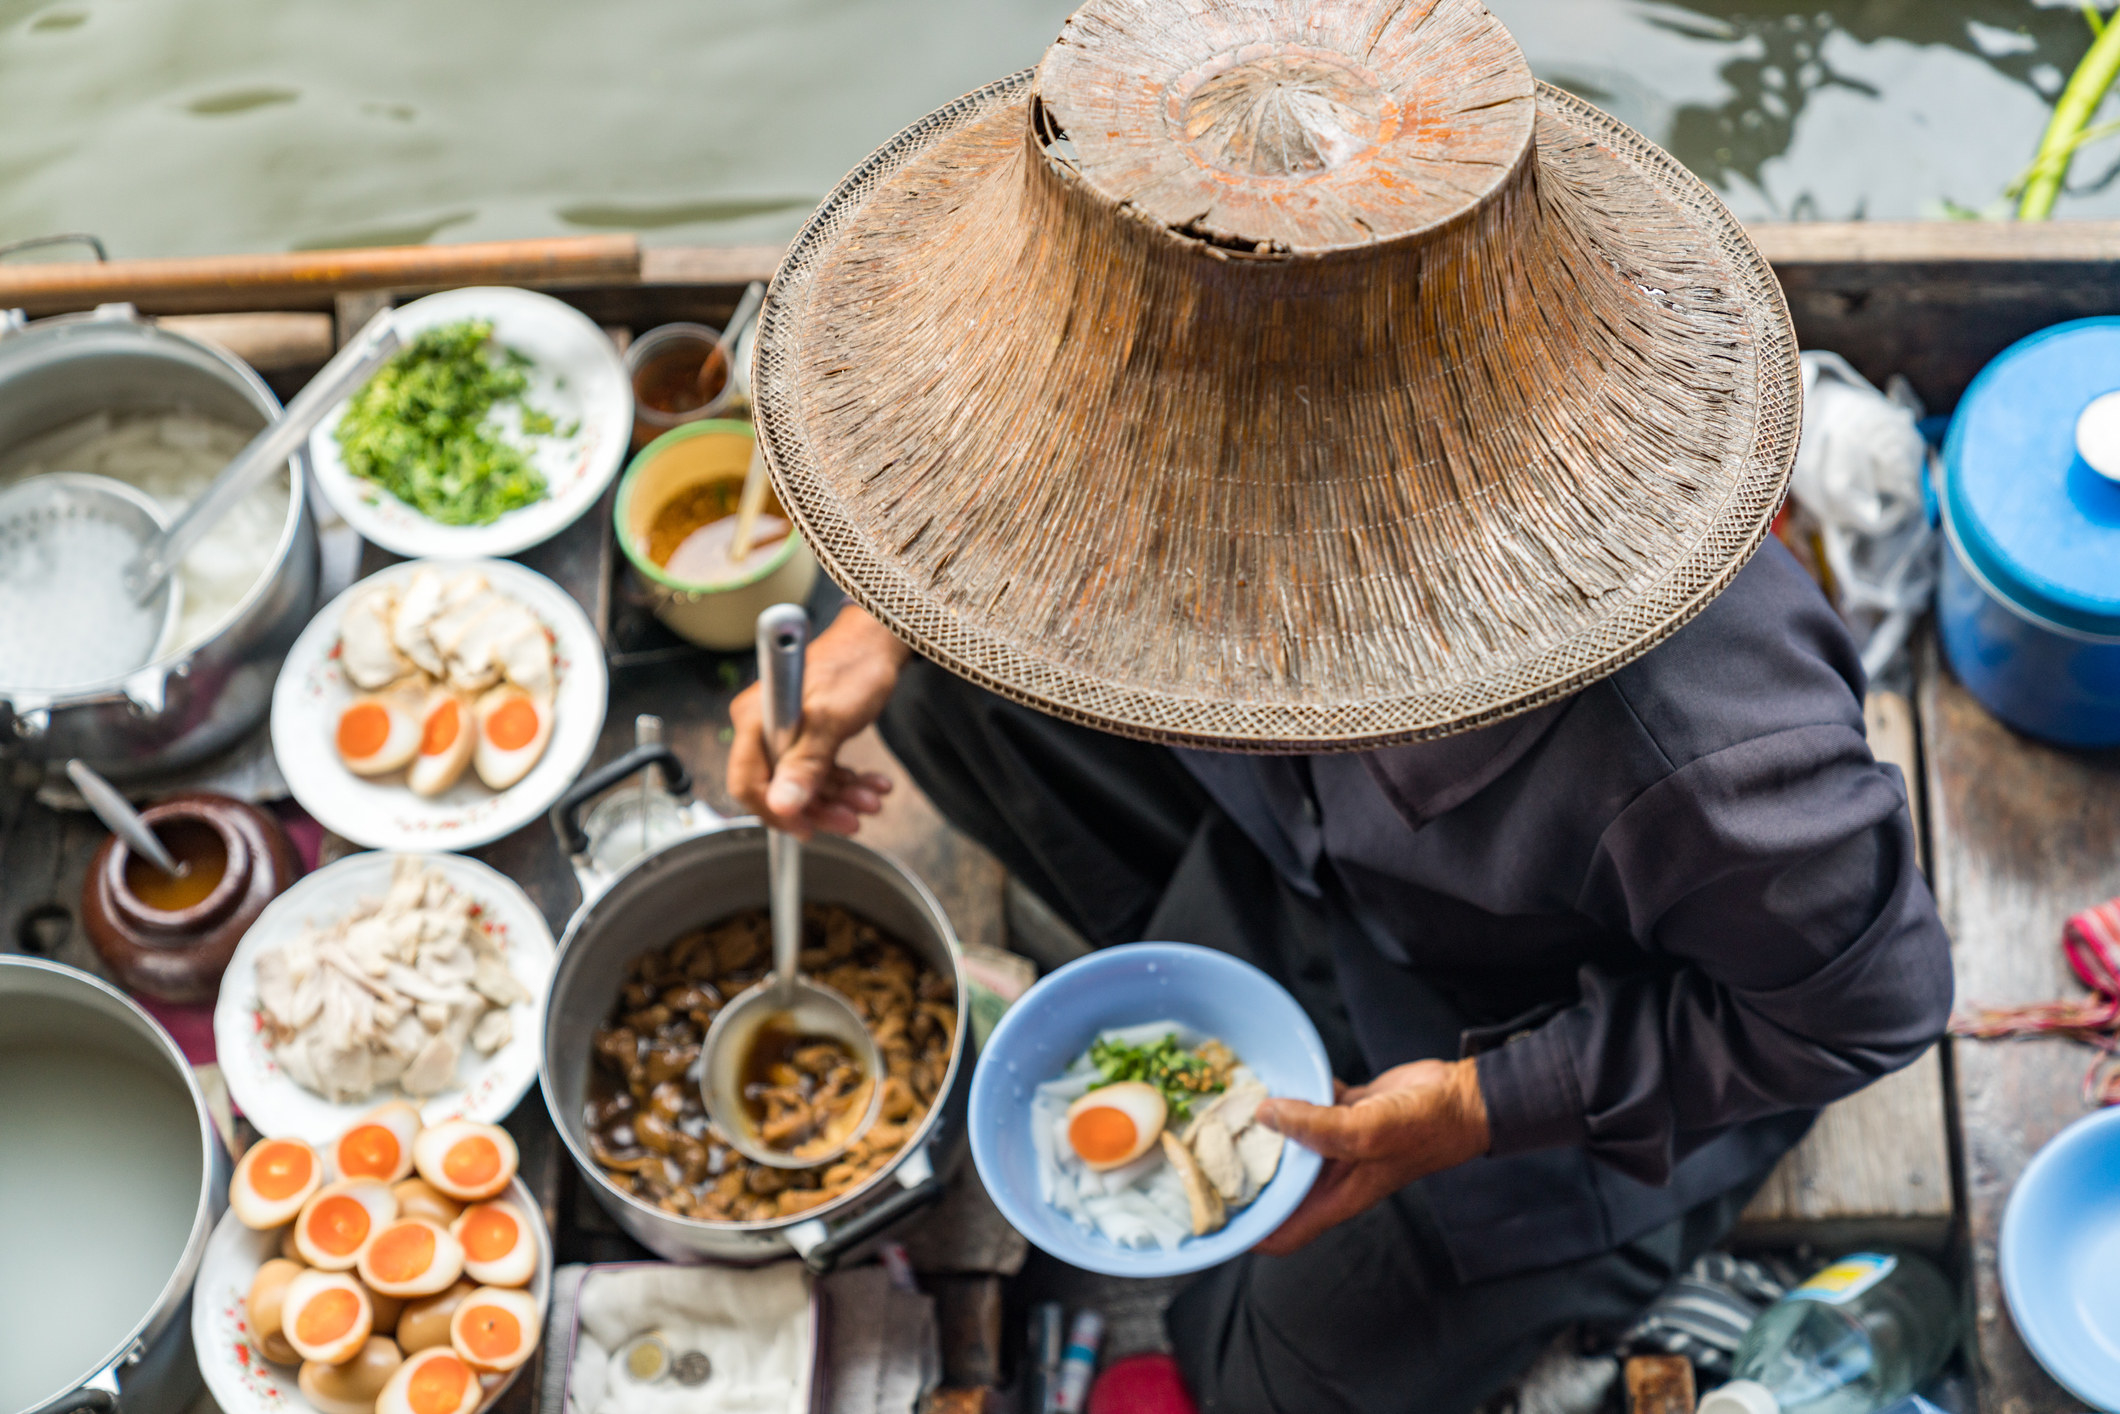 A woman serving street food in Thailand.